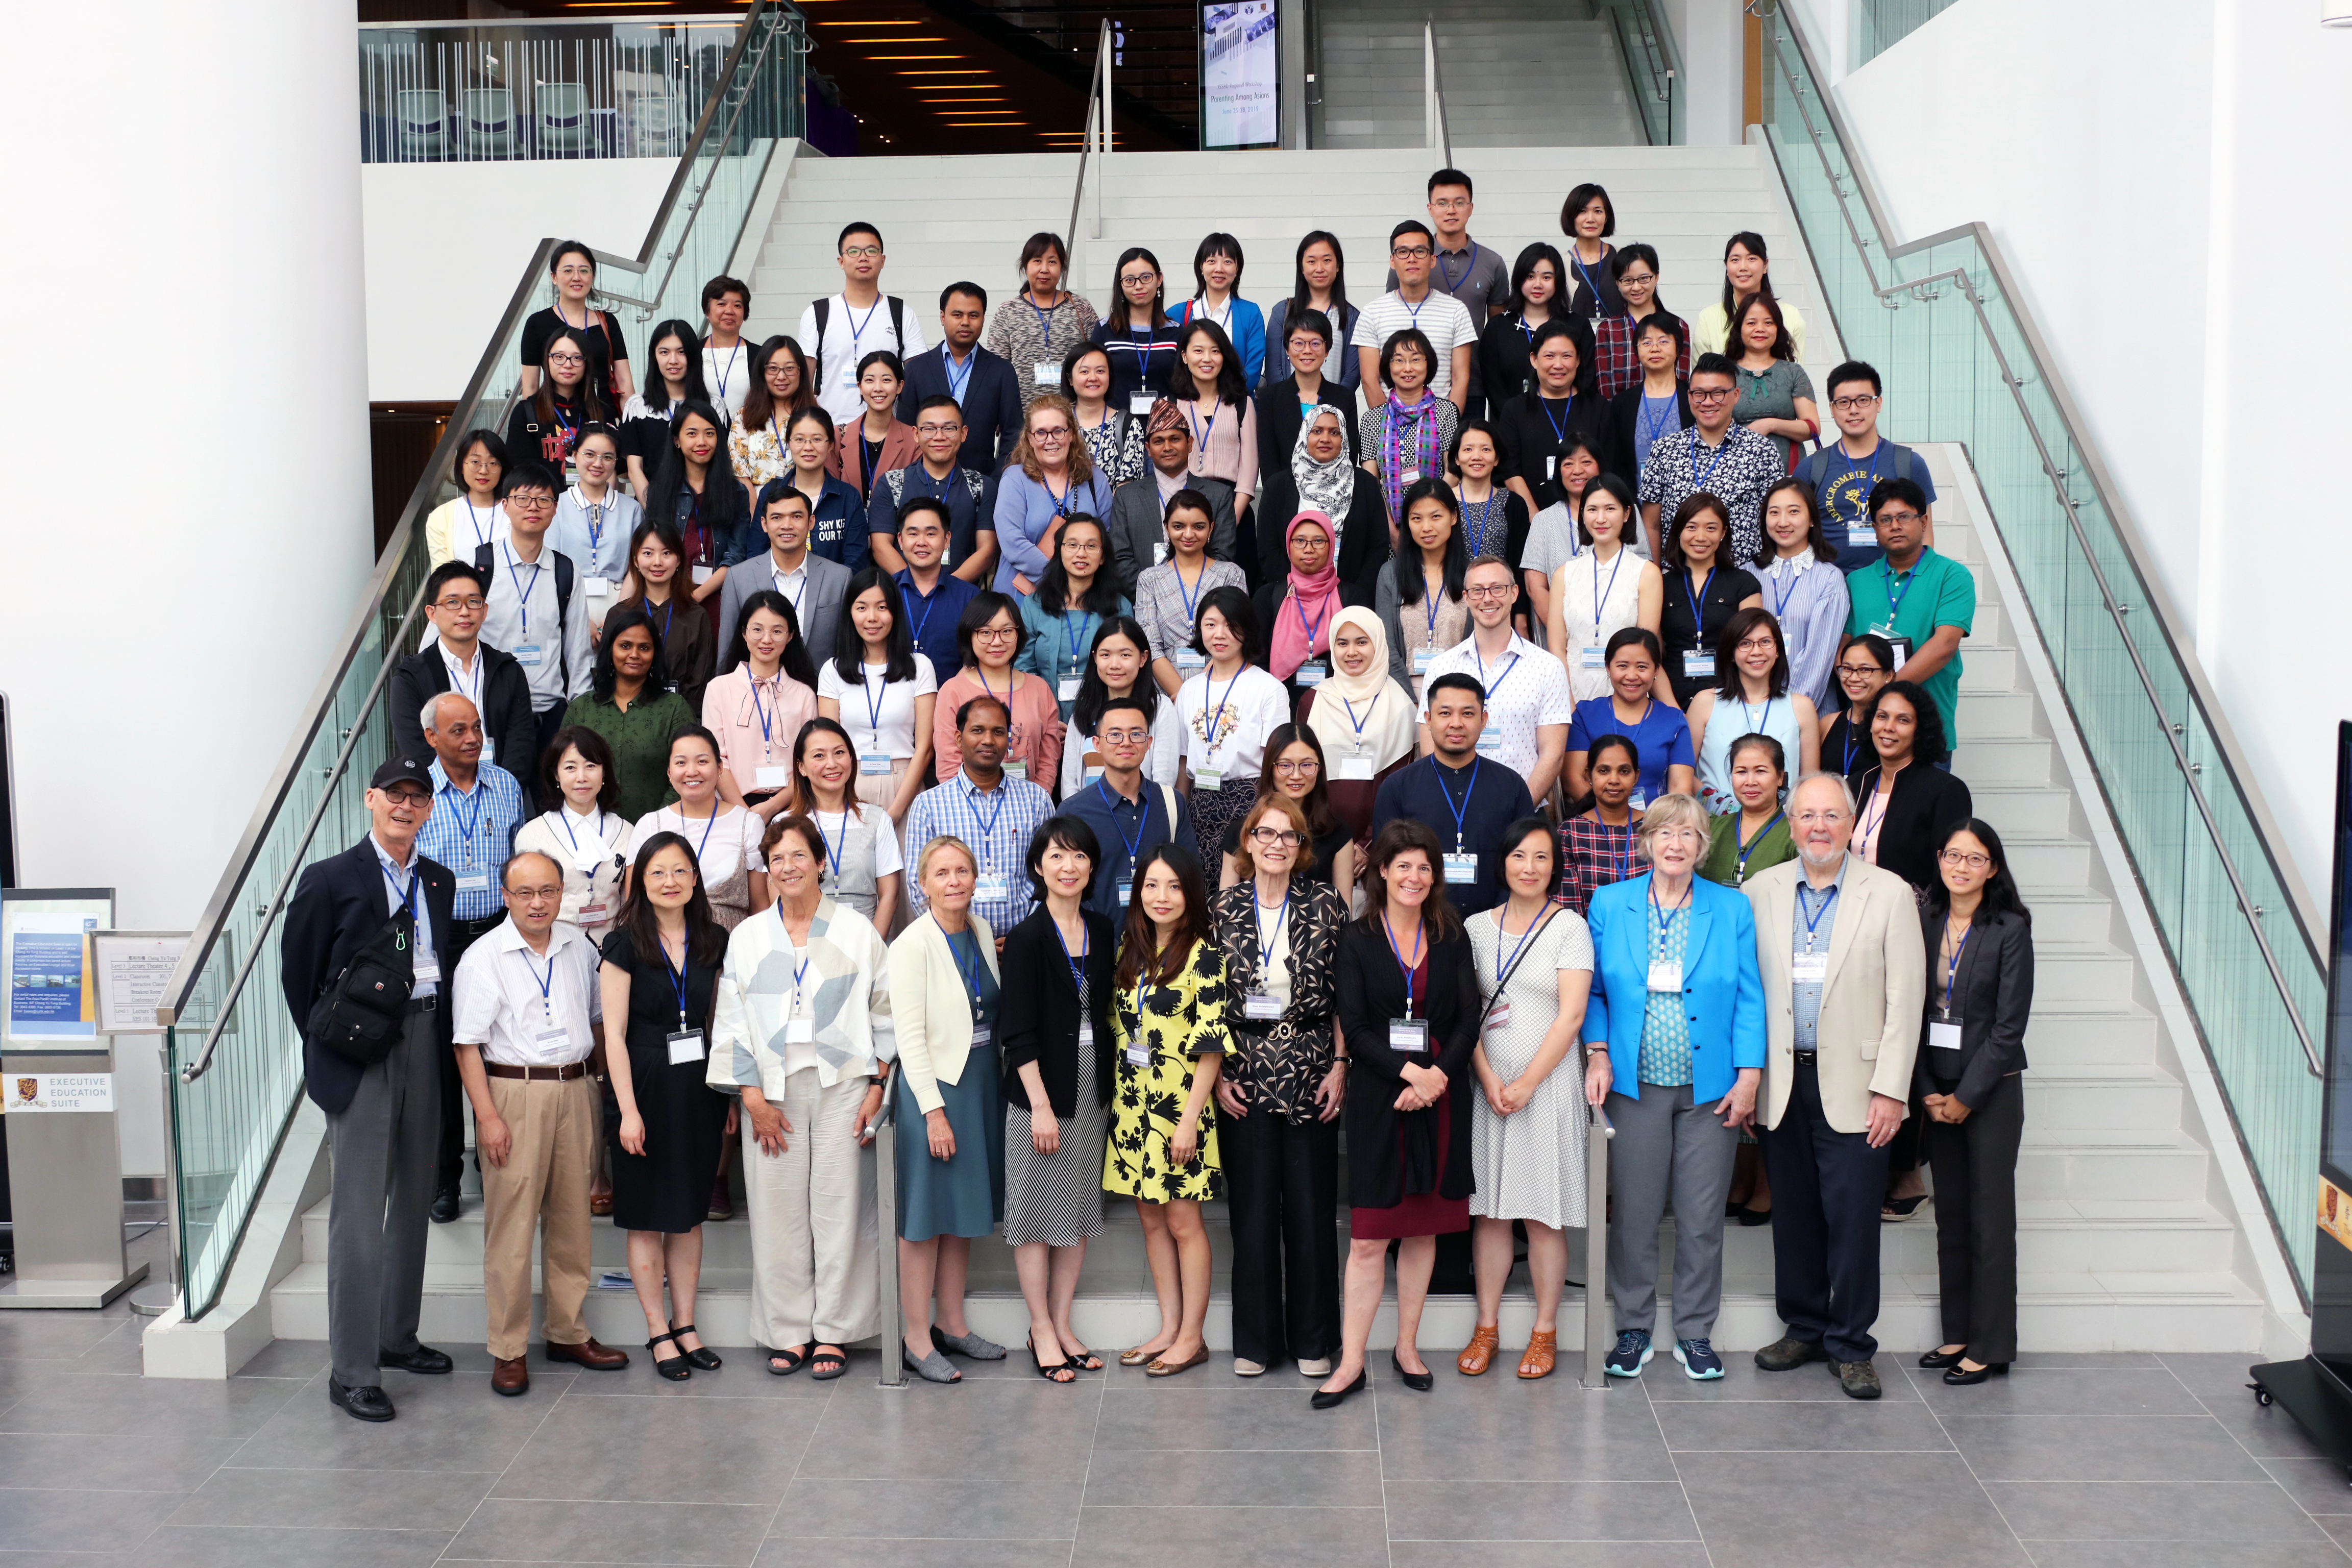 ISSBD Regional Workshop on the Values and Development of Southeast Asian Youth